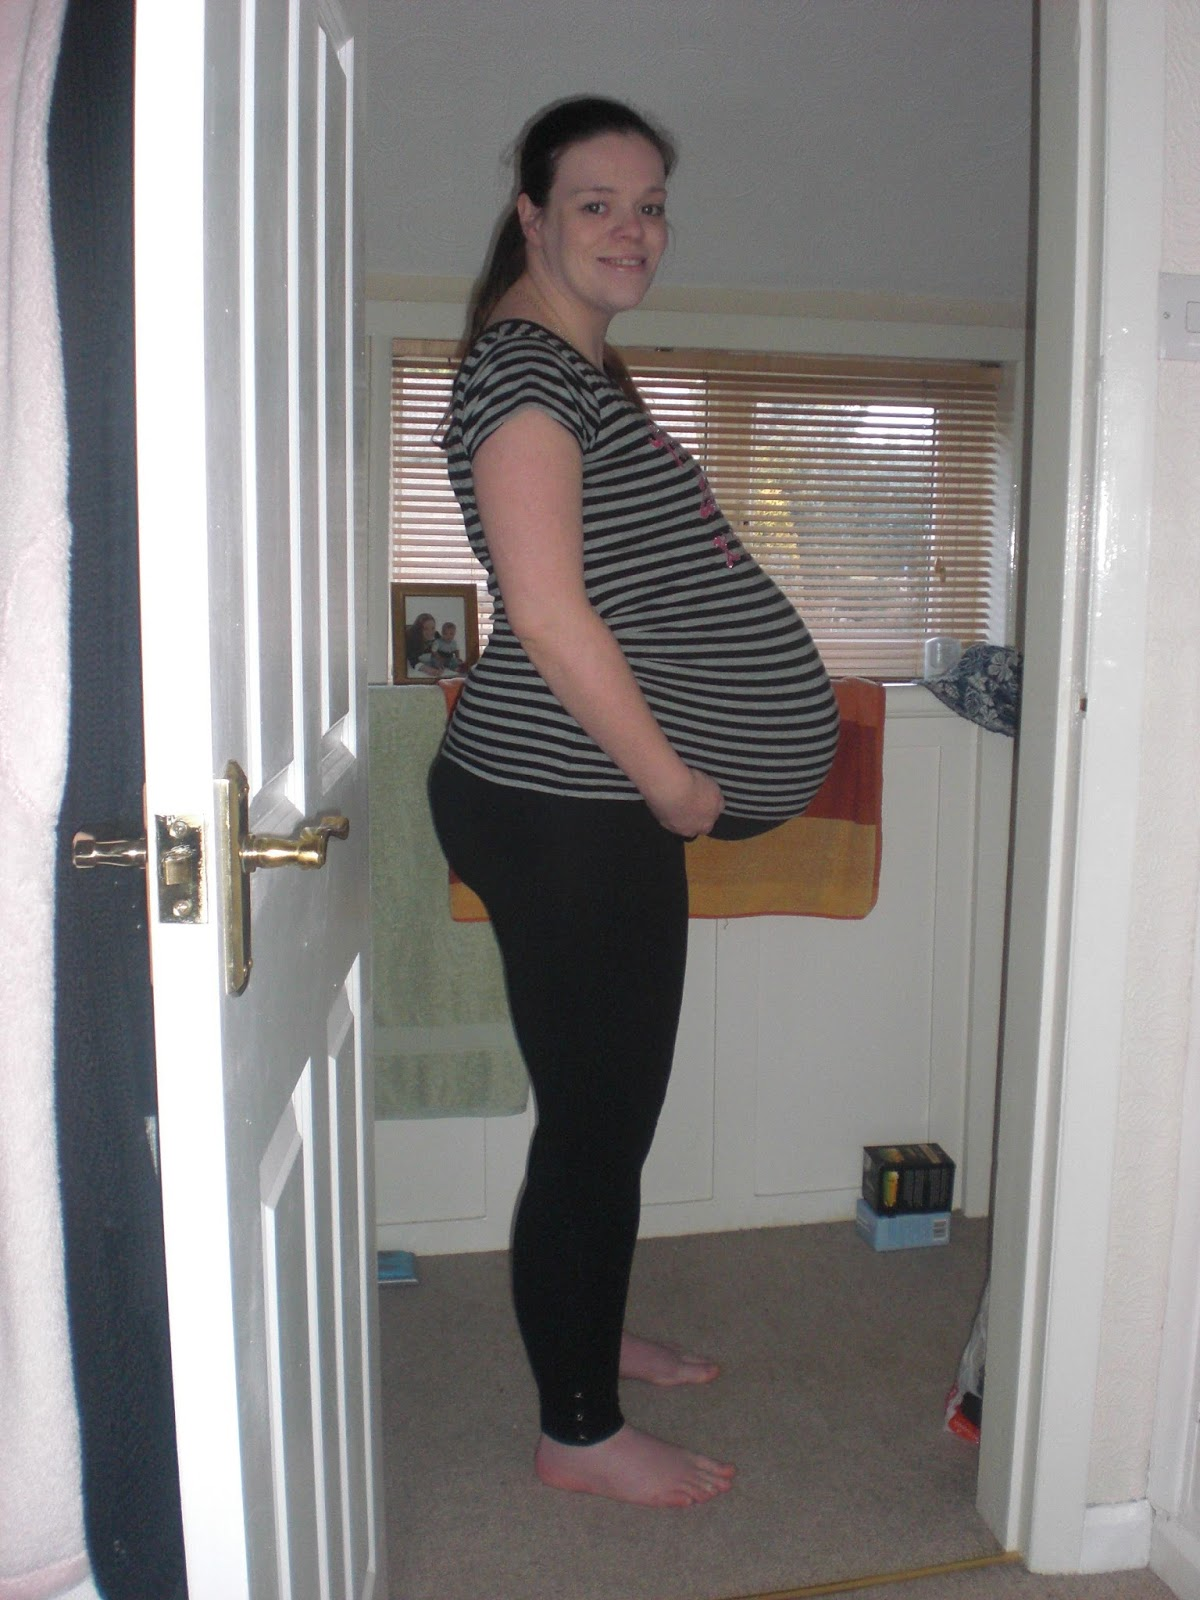 9 months full term pregnant lactating 5